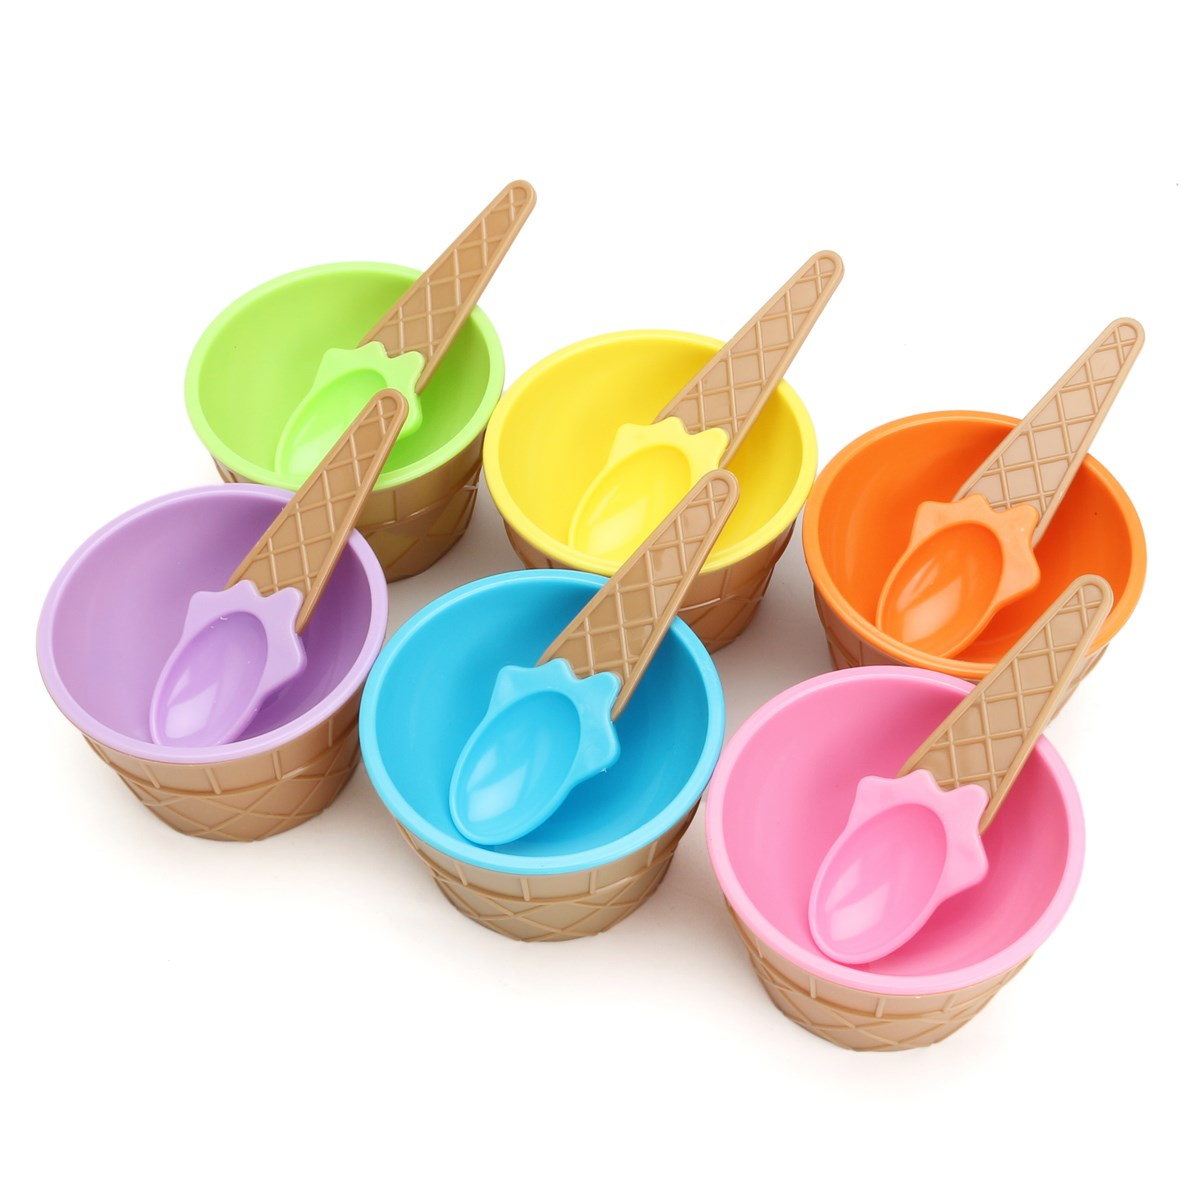 Grande Plastic Ice Cream Bowls Spoons Set Colorful Ice Cream Cupdessert Bowl Home Kitchen Diy Ice Cream Decorating Ice Creamscoops Stacks Plastic Ice Cream Bowls Spoons Set Colorful Ice Cream Cup nice food Ice Cream Bowls